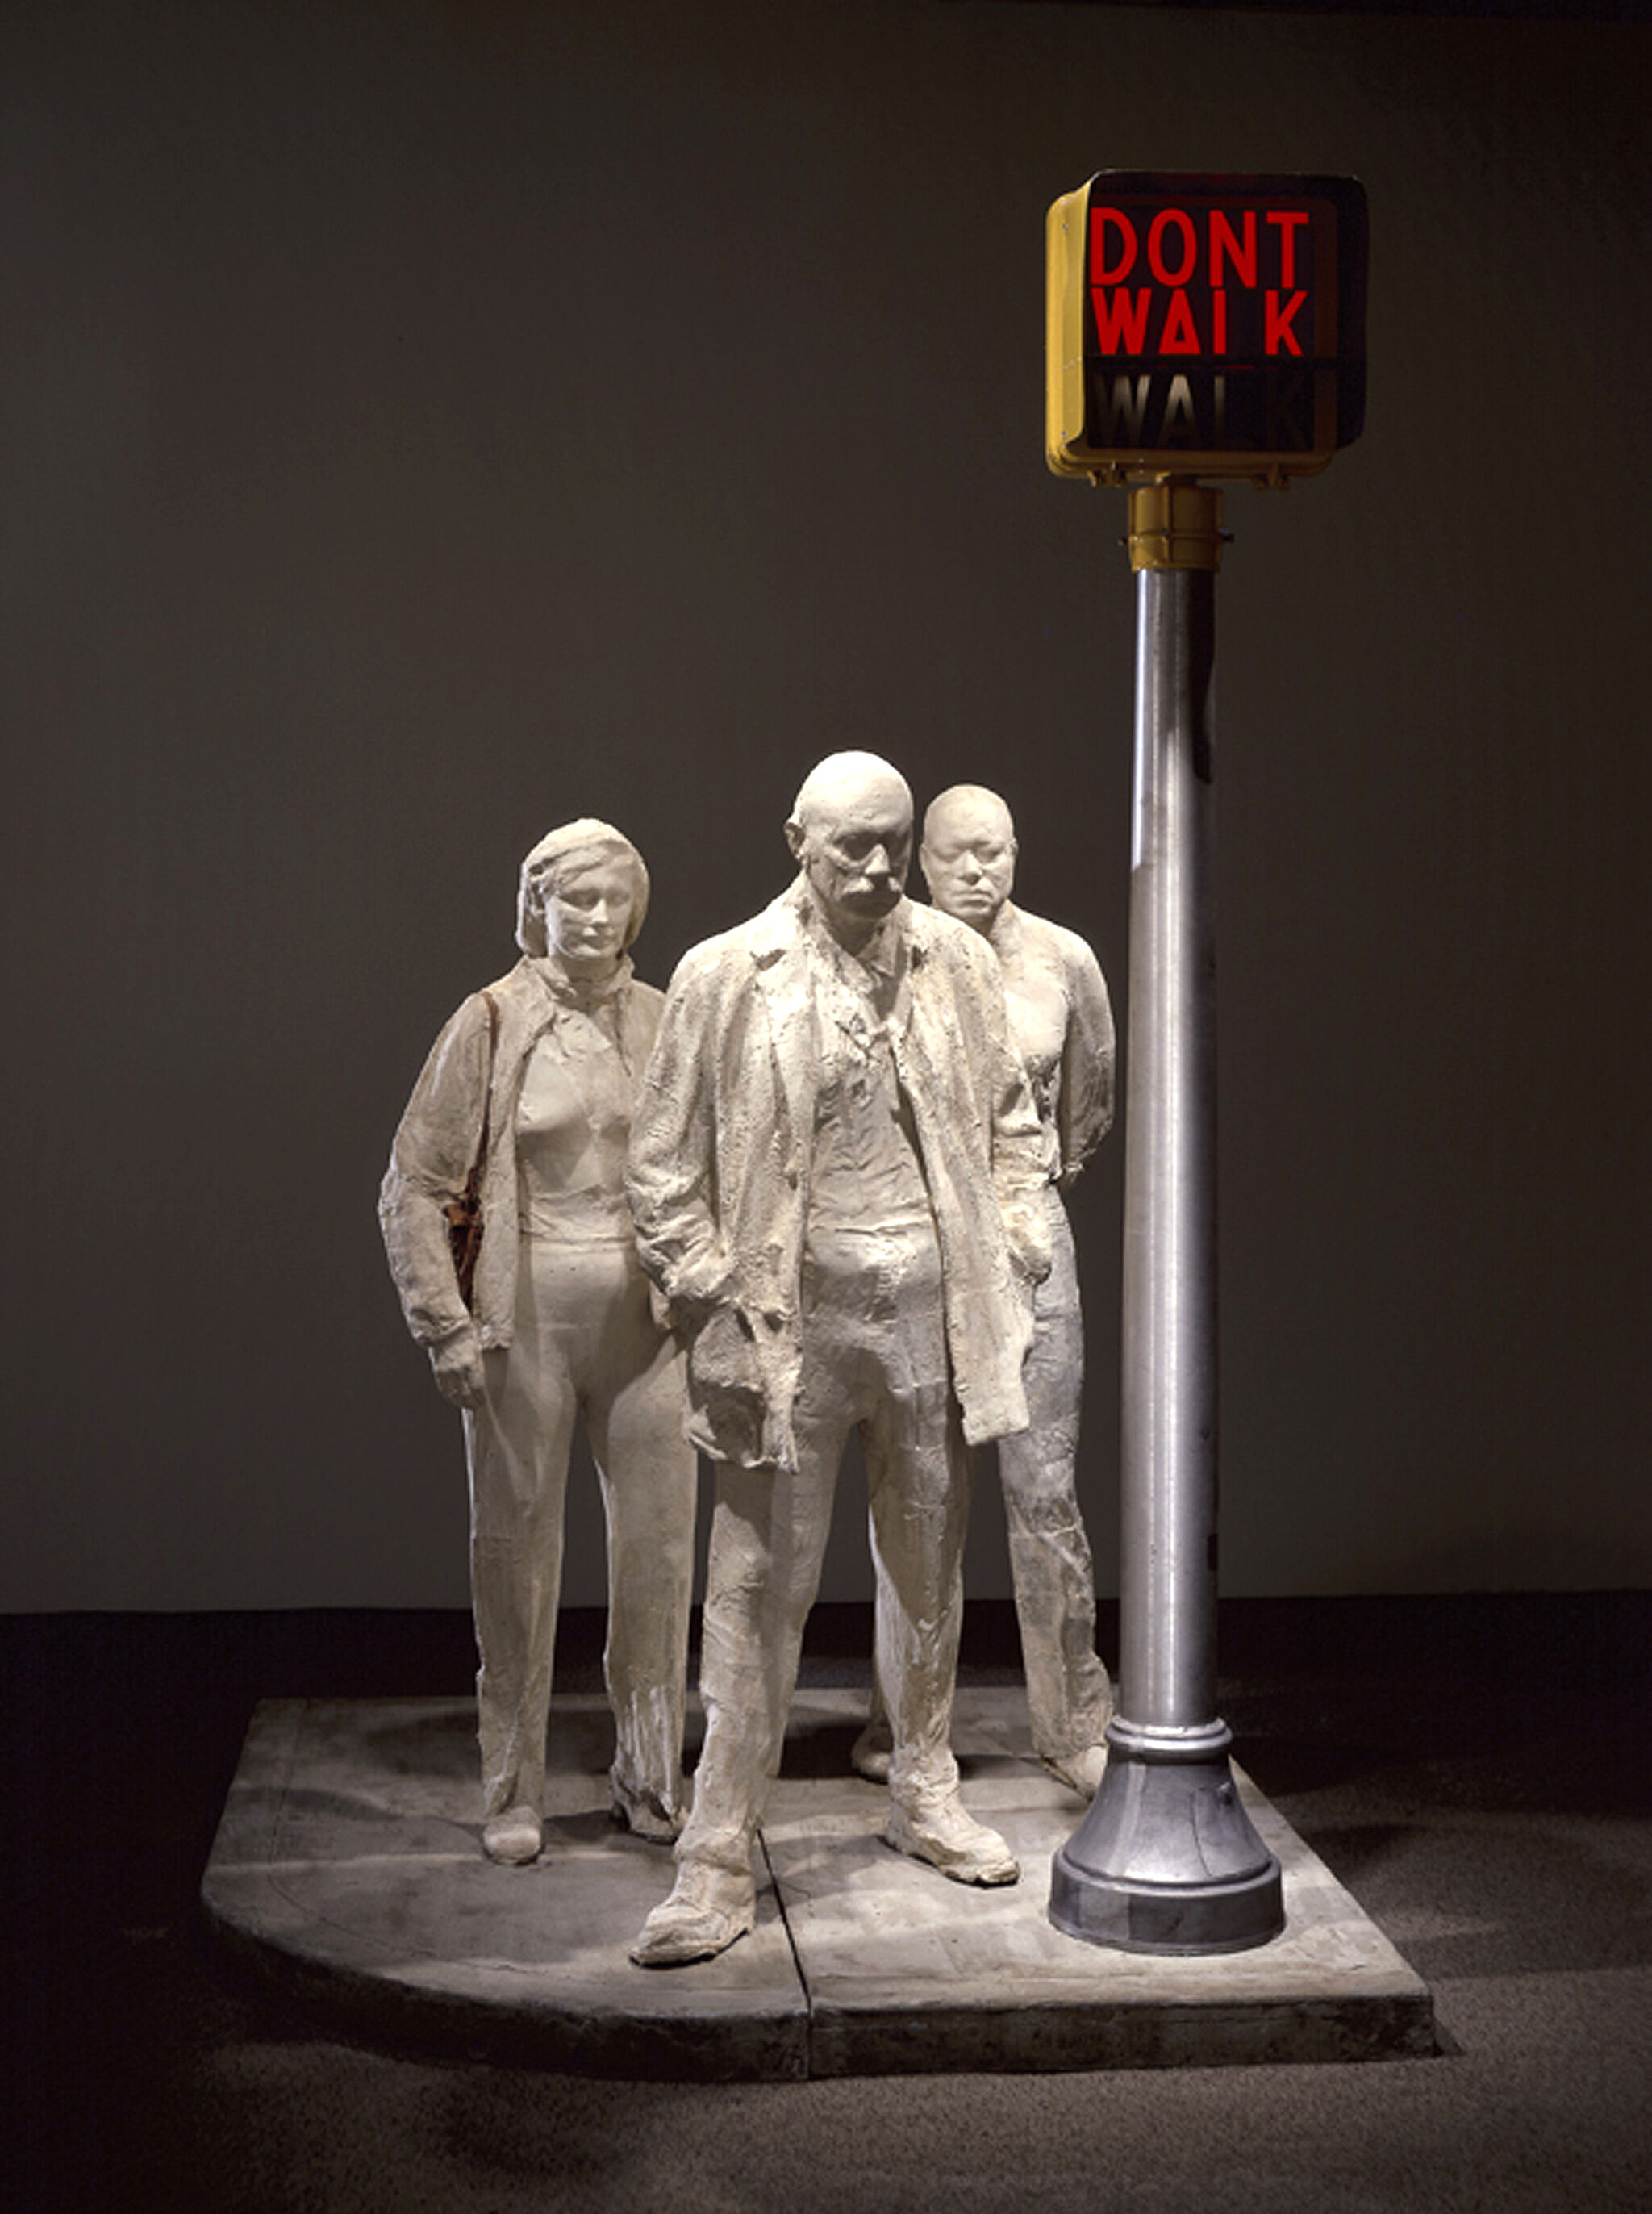 A sculpture of three people standing at a crosswalk sign.